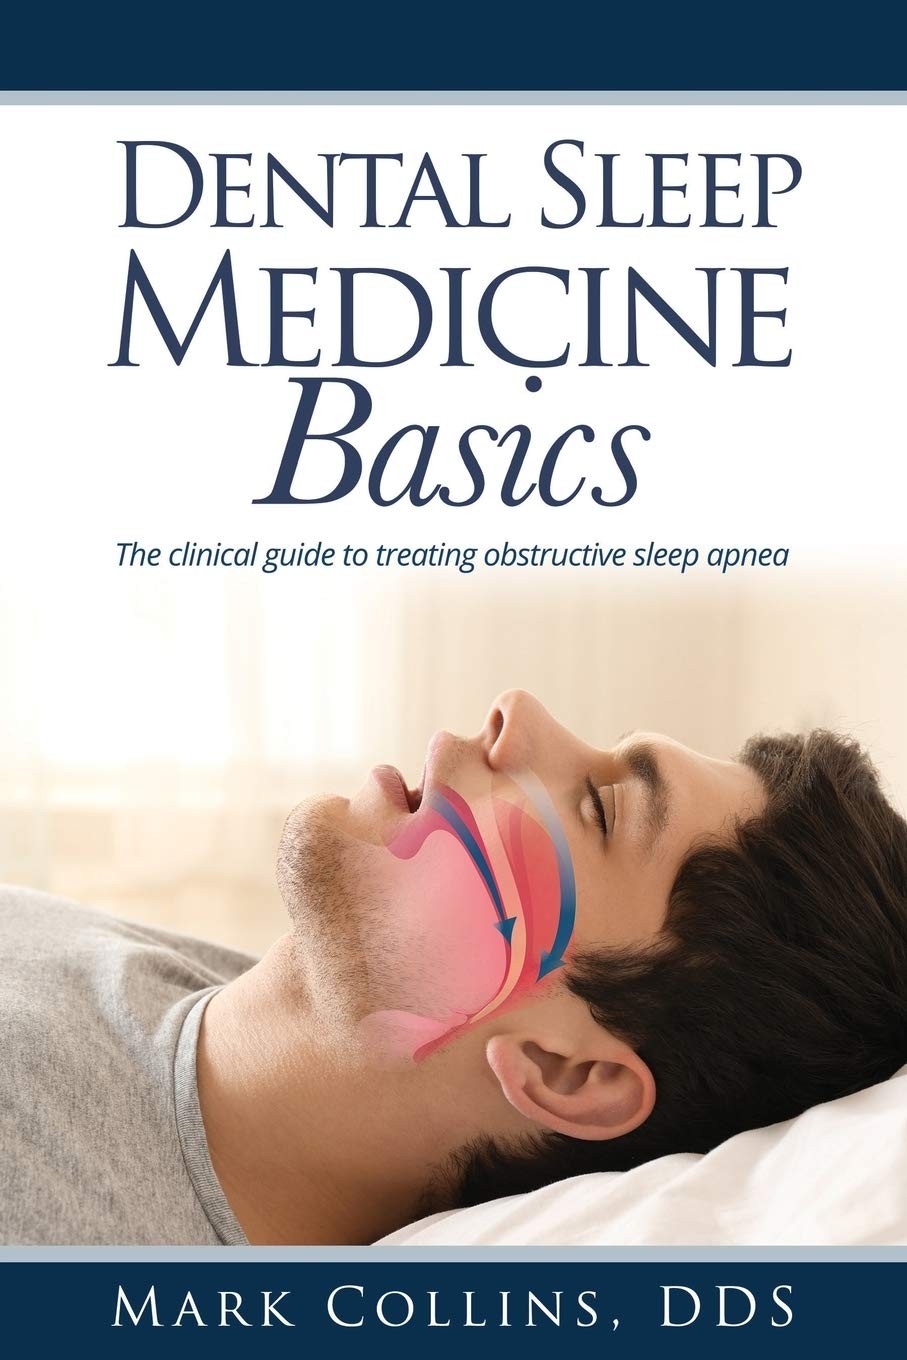 Image OfDental Sleep Medicine Basics: The Clinical Guide To Treating Obstructive Sleep Apnea